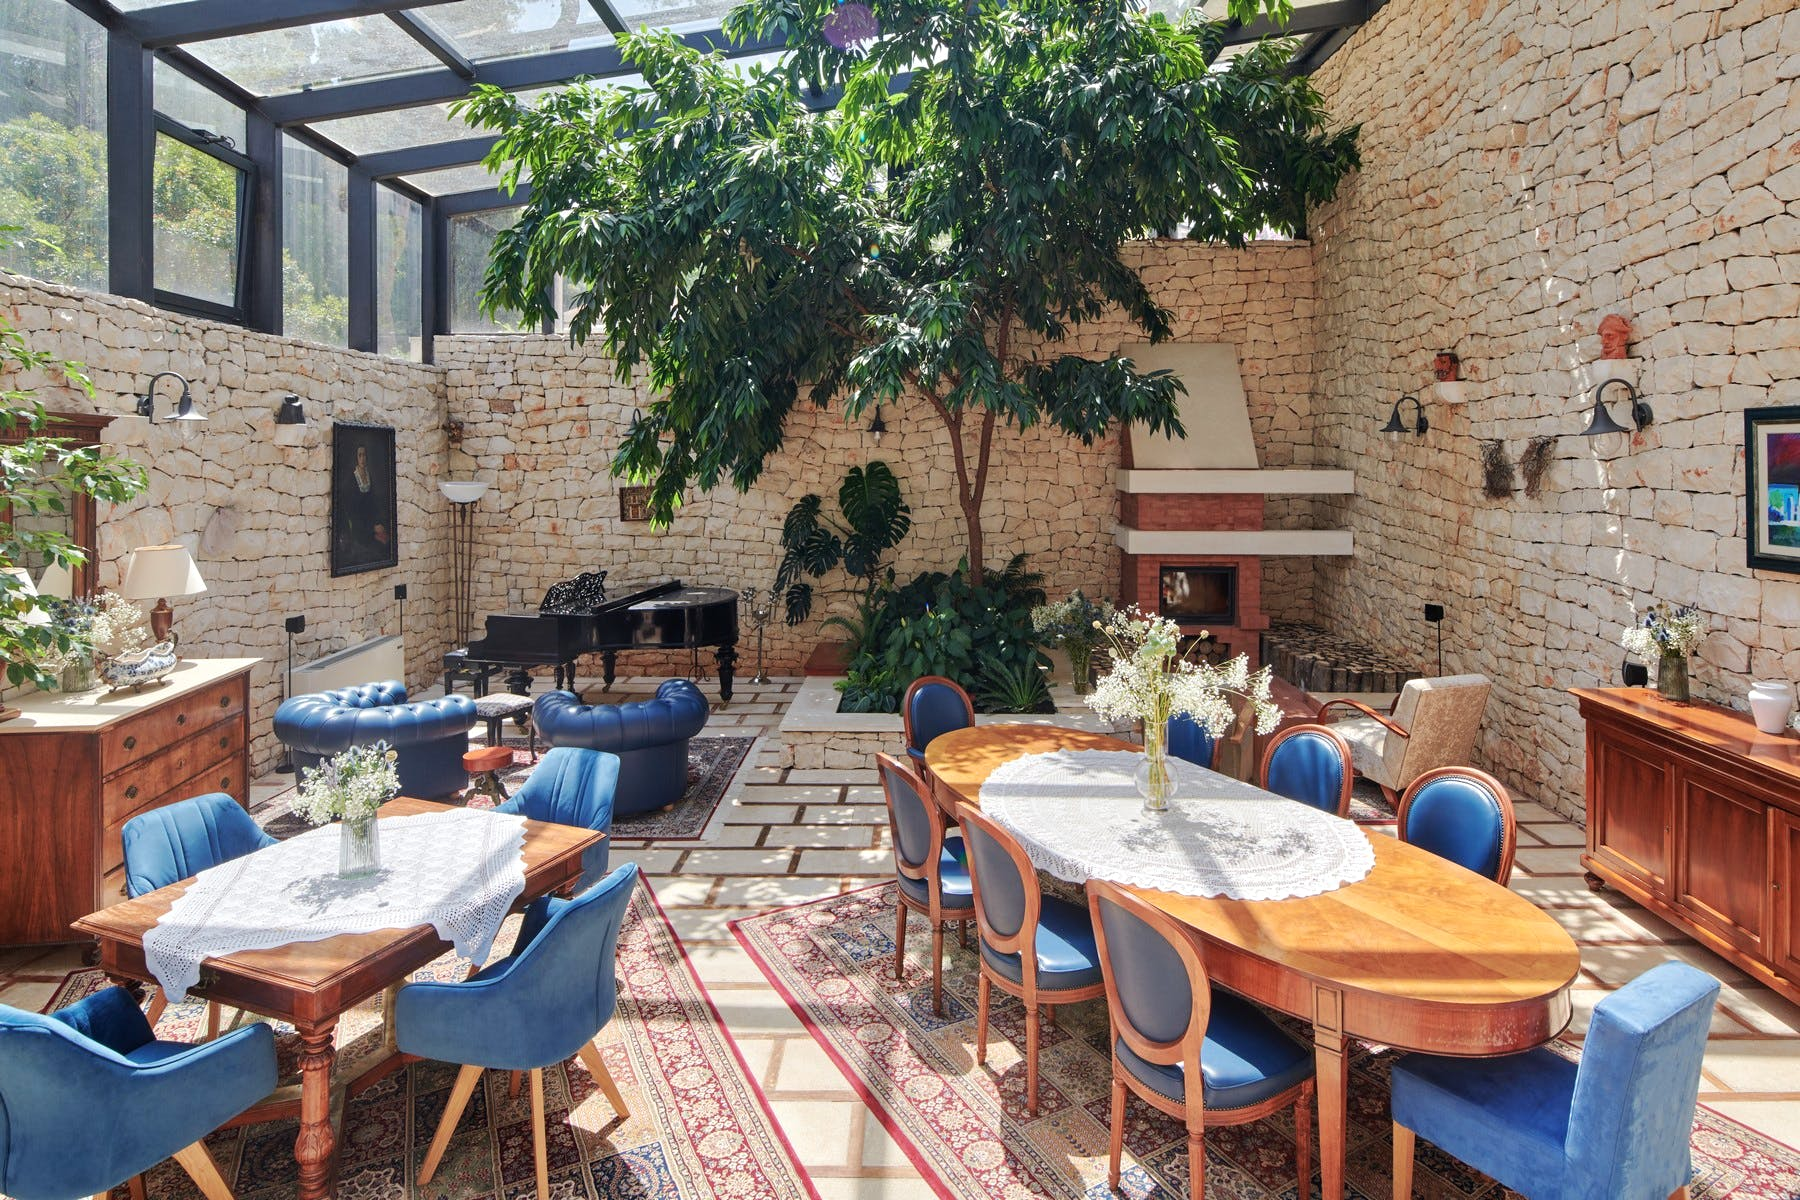 Spacious dining room enhanced by stone walls and greenery